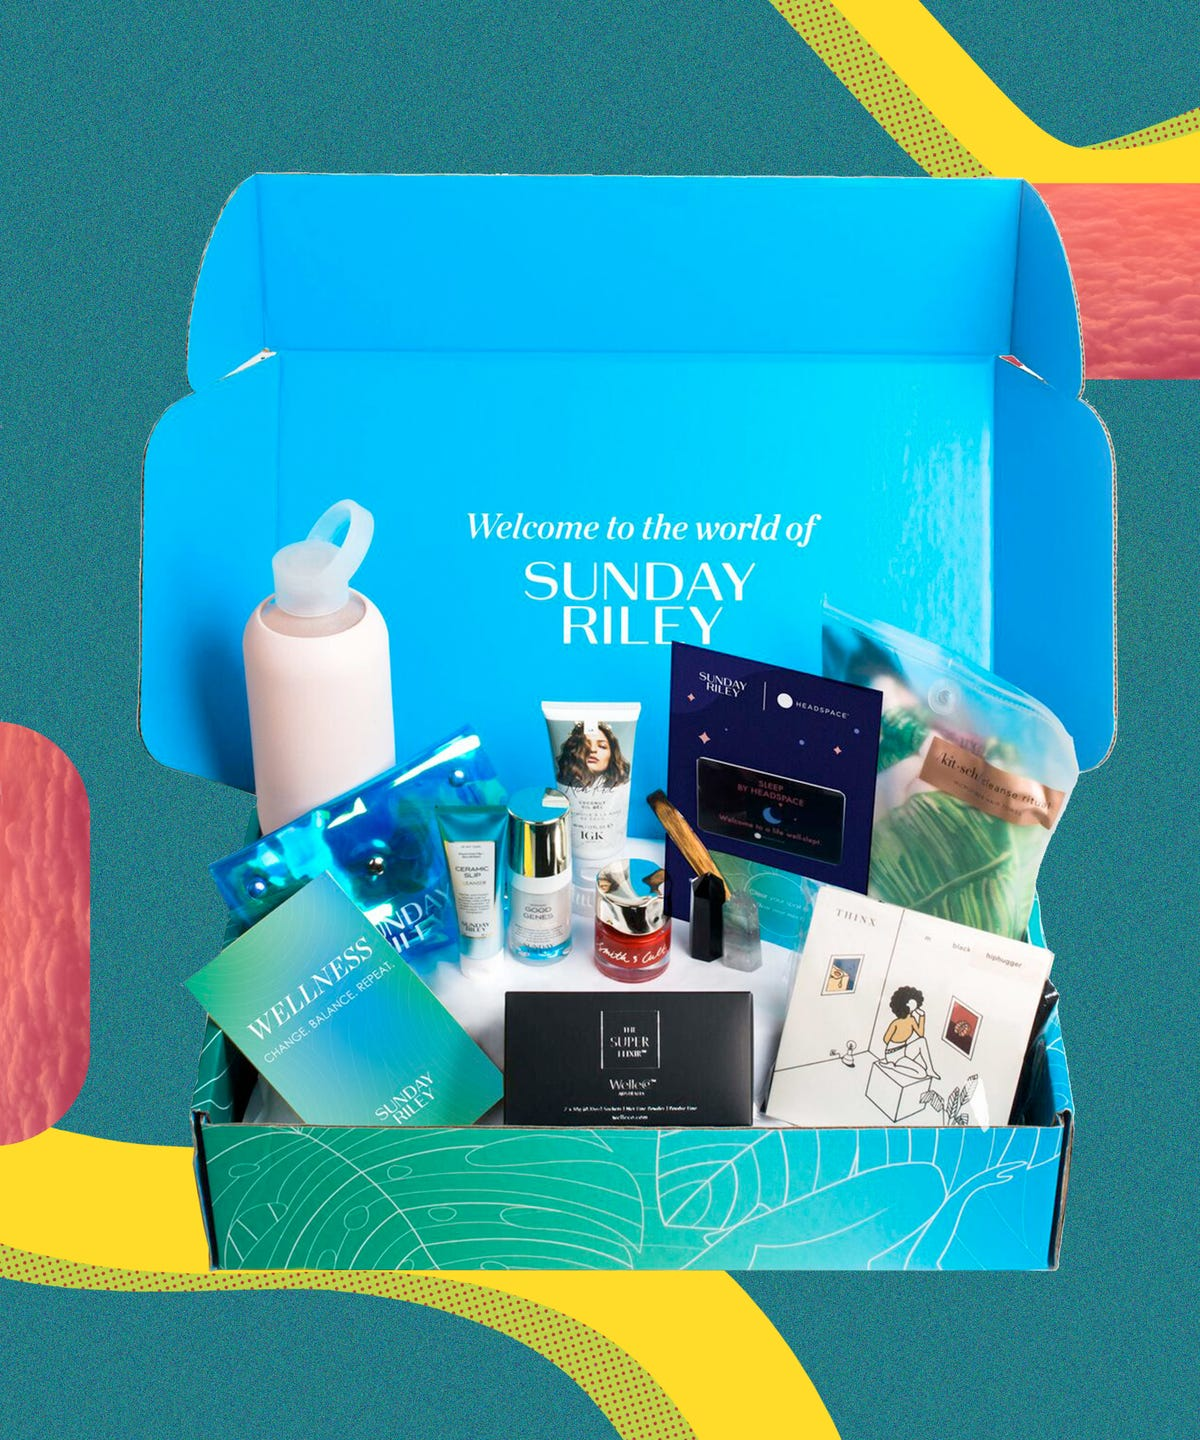 Sunday Riley Subscription Box Is The Coolest New Launch